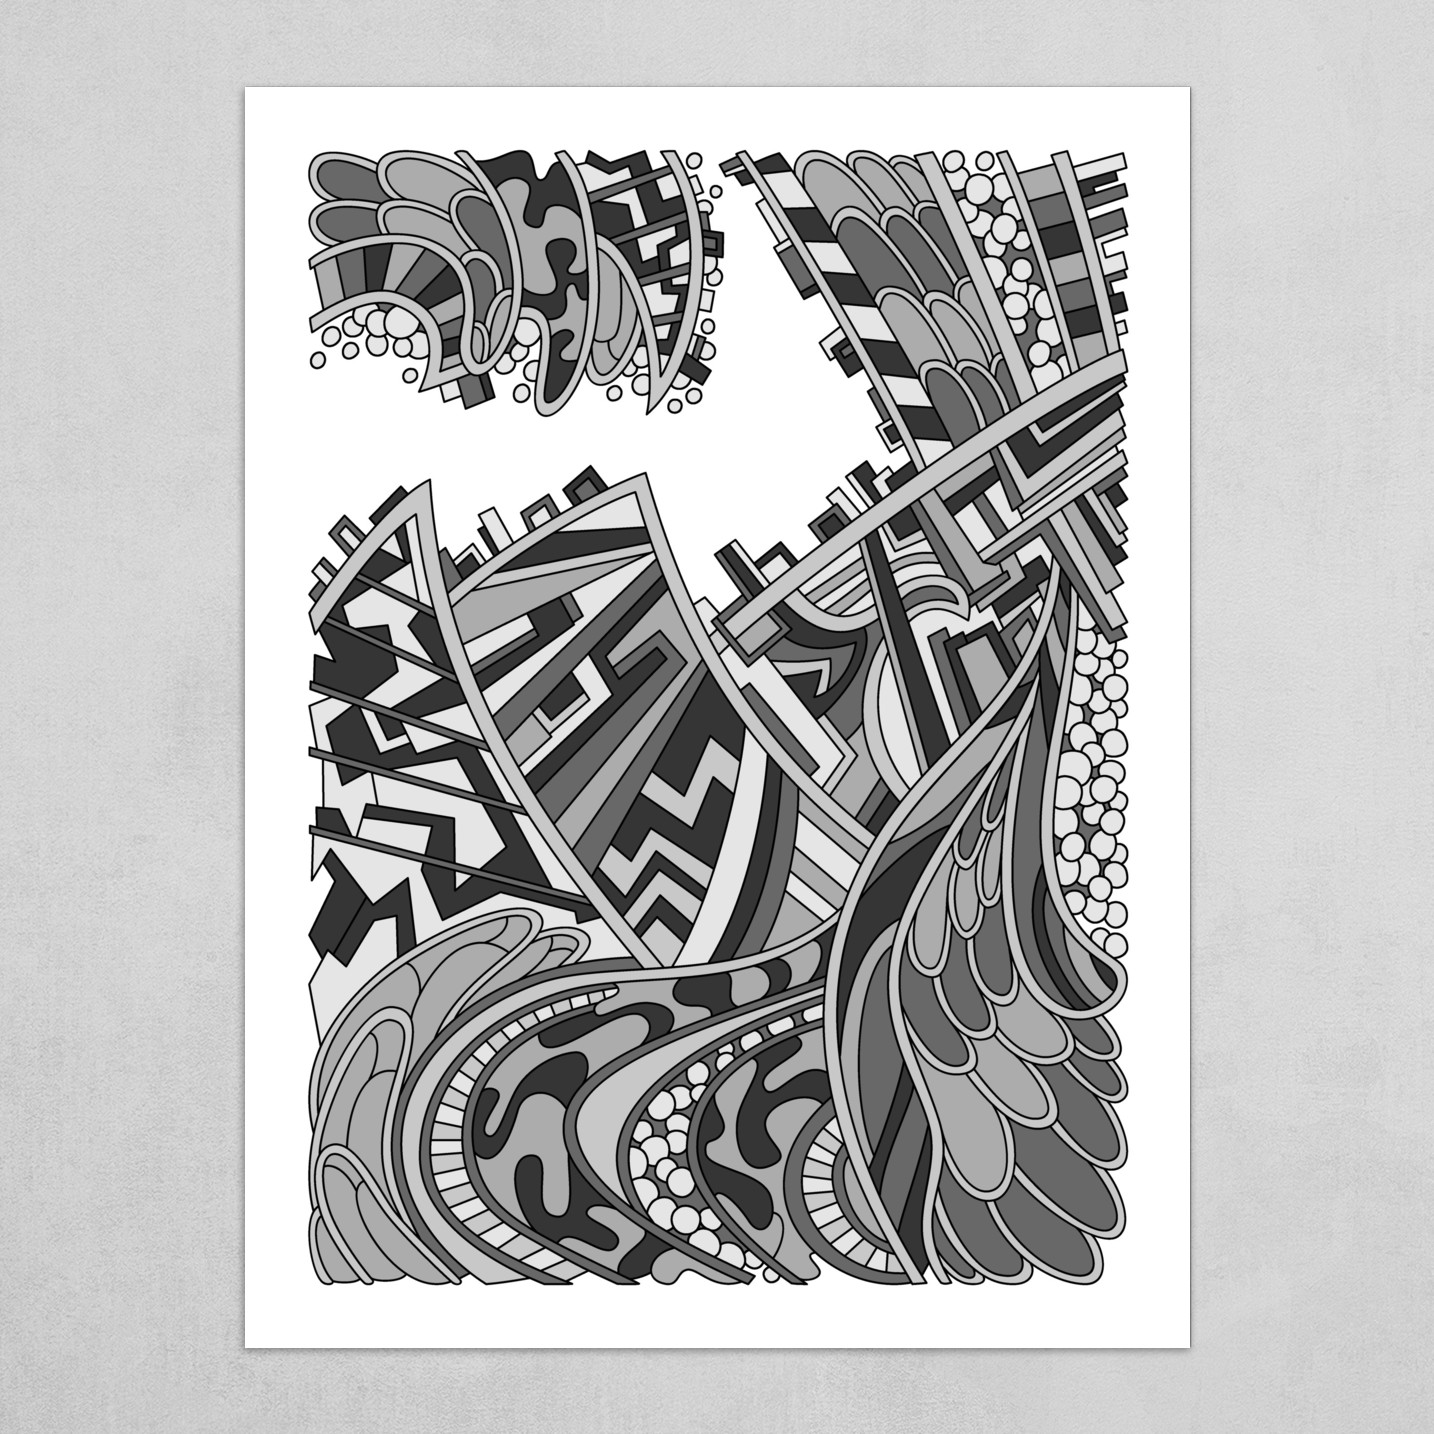 Wandering Abstract Line Art 01: Grayscale